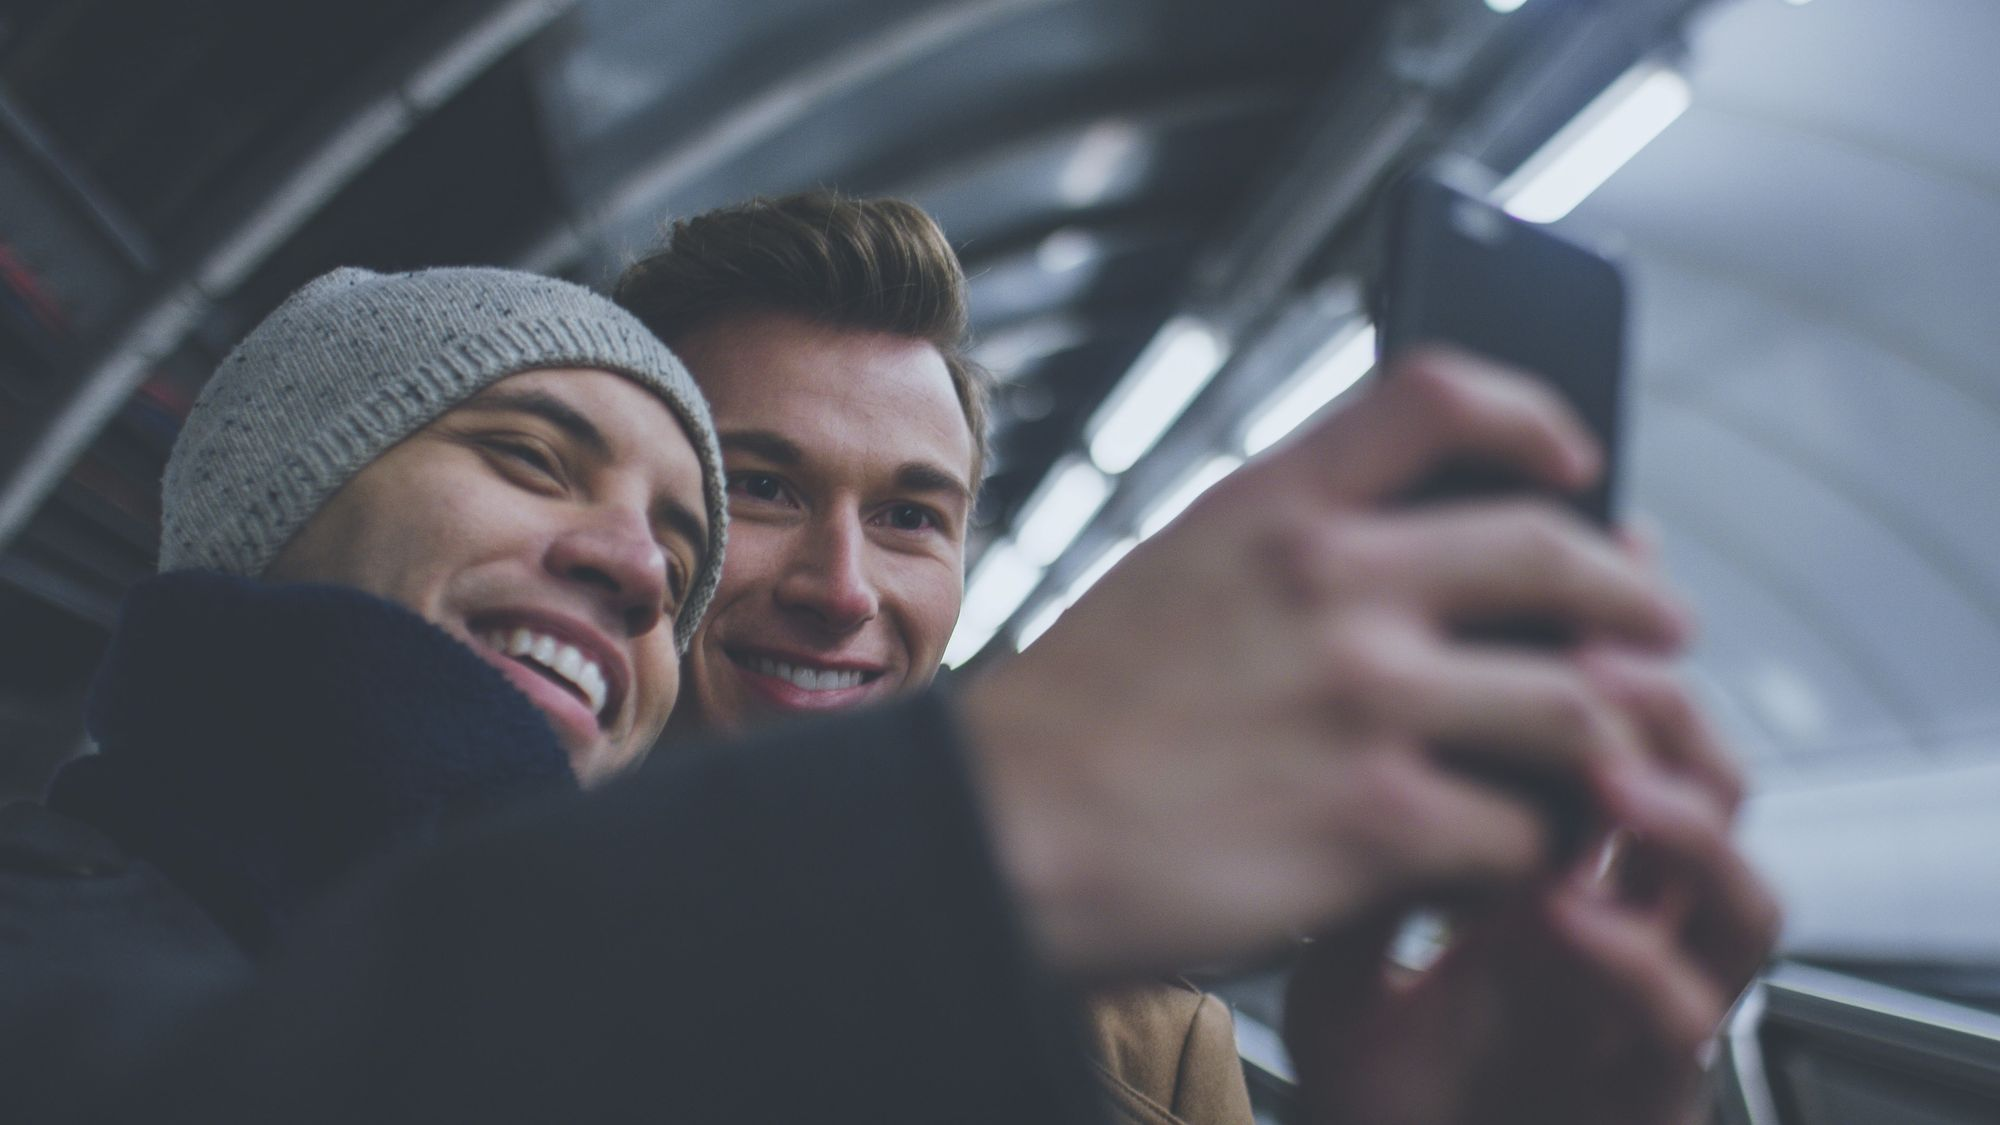 Couple_Taking_Selfie_In_Train_Station  3